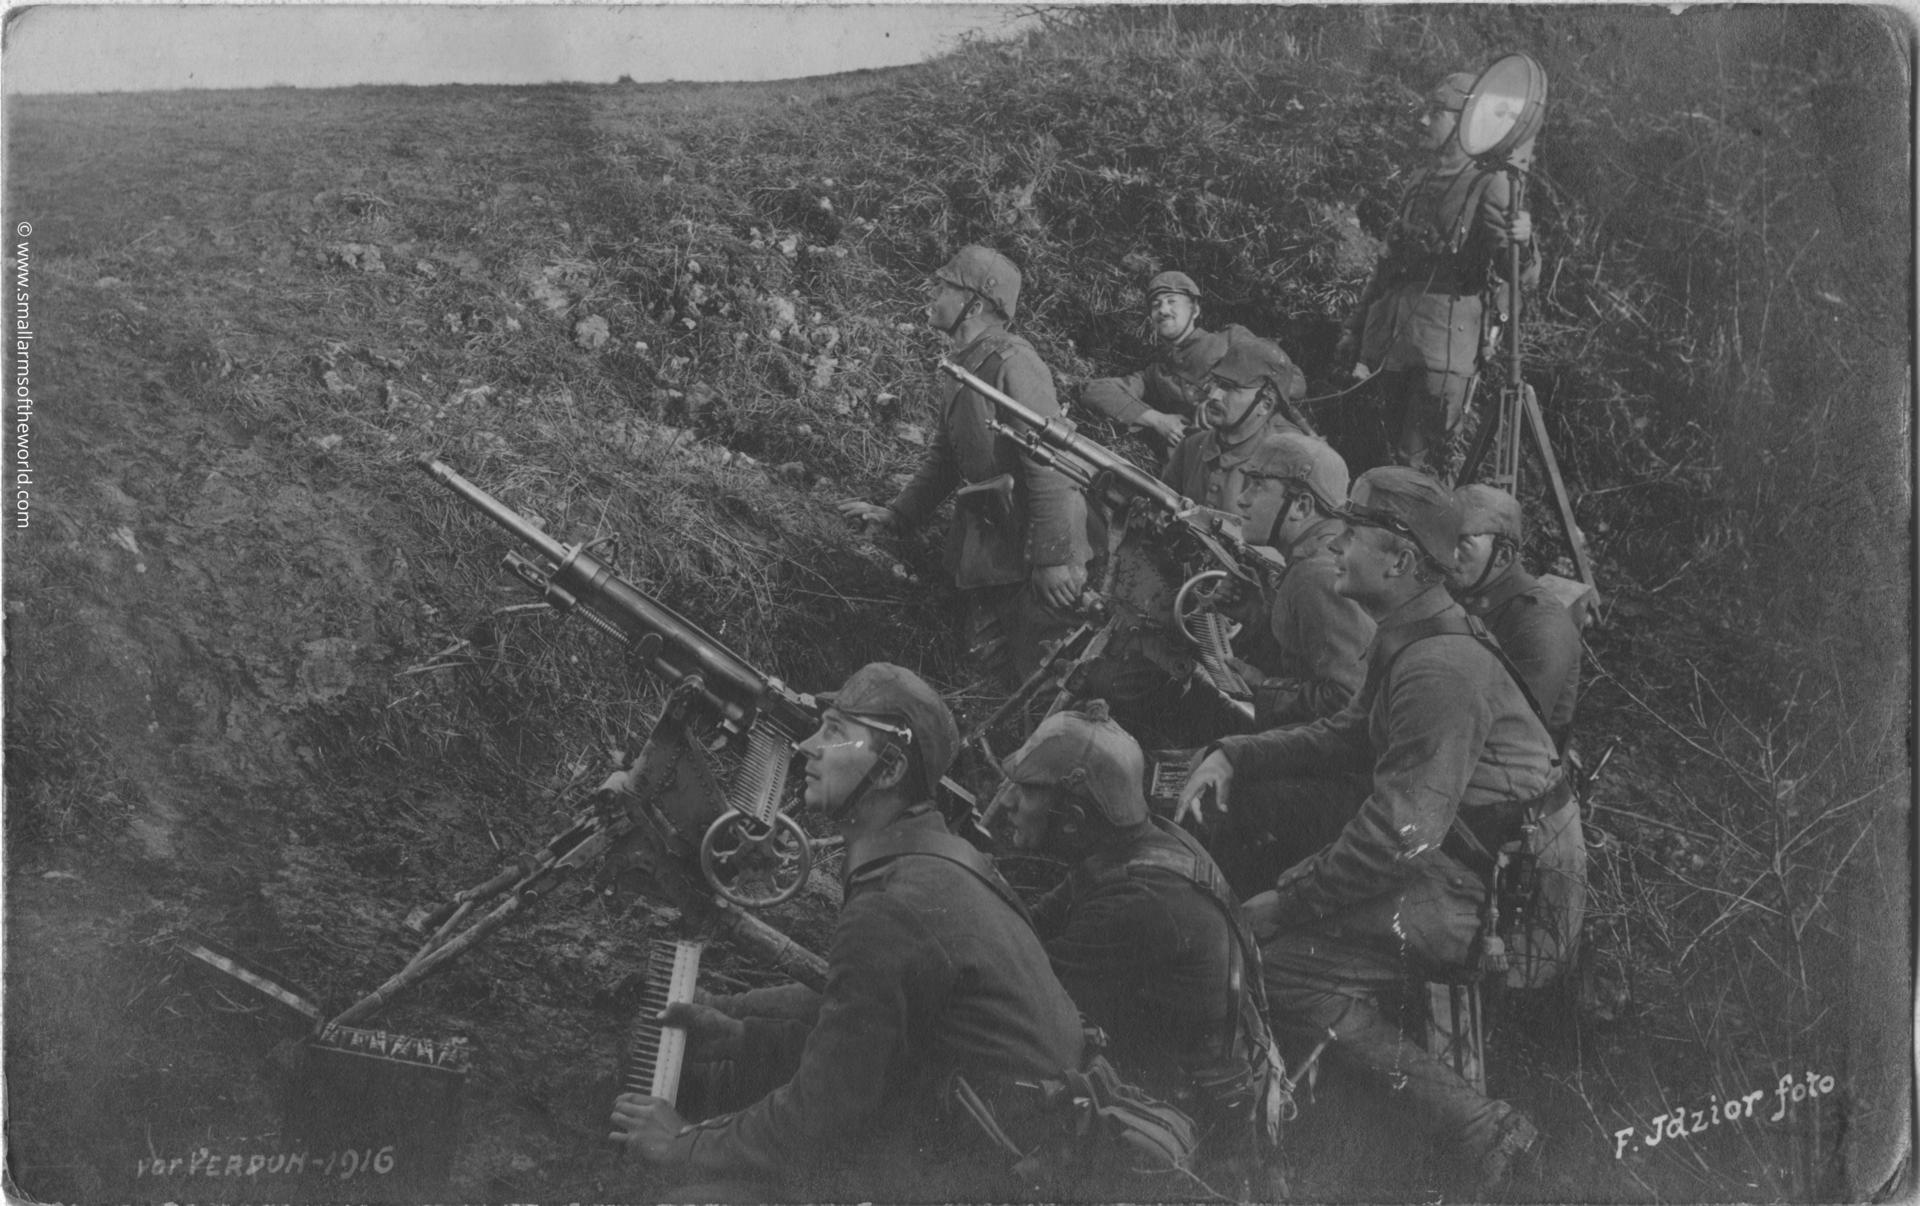 German soldiers using 1907/15 St. Etienne machine guns  for anti-aircraft fire. Note the search light. This photo was taken in Verdun in 1916.